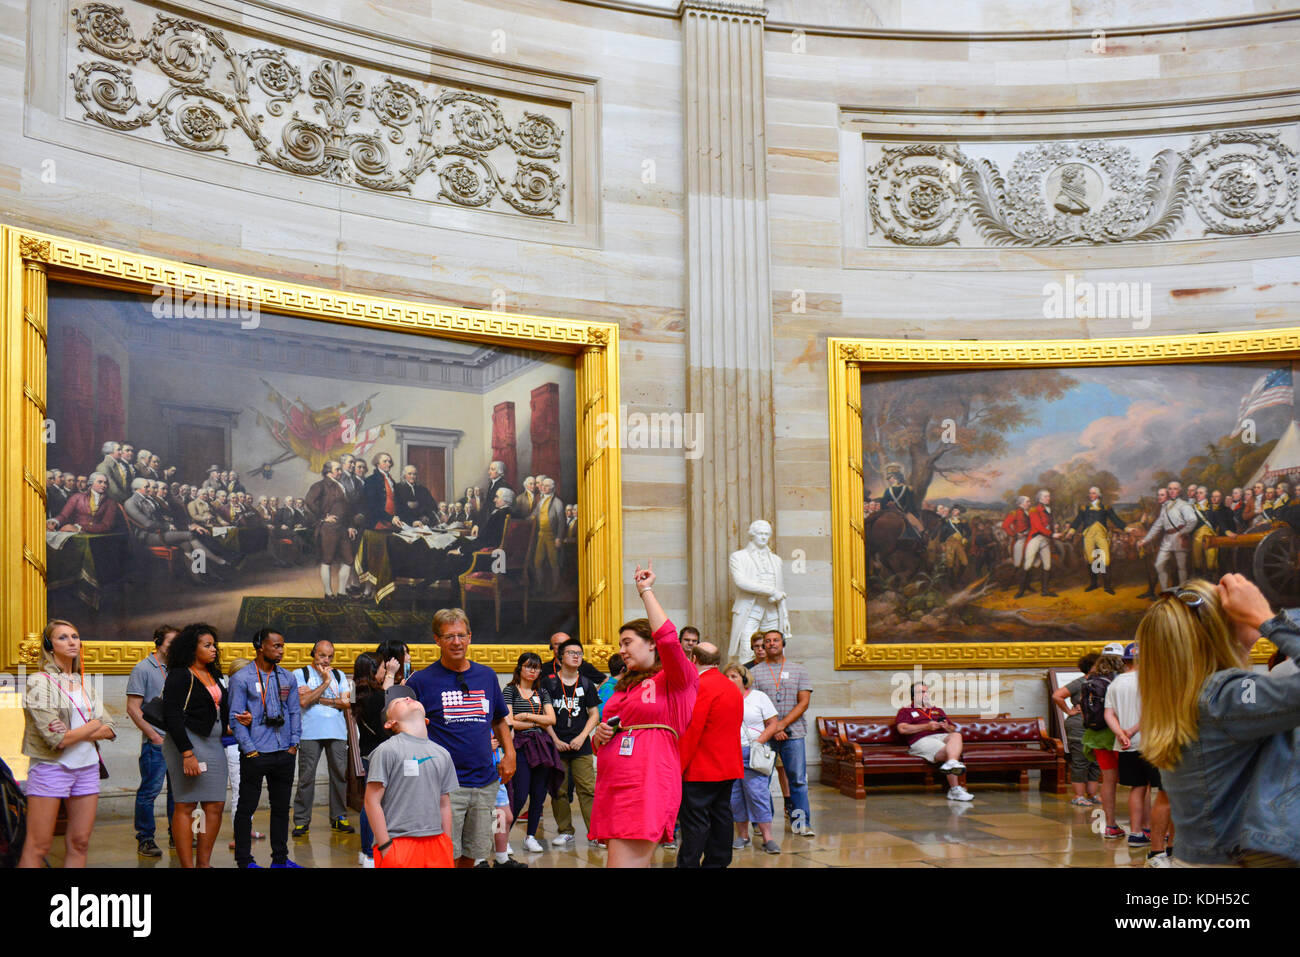 Female tour guide points to the famous paintings and murals inside.